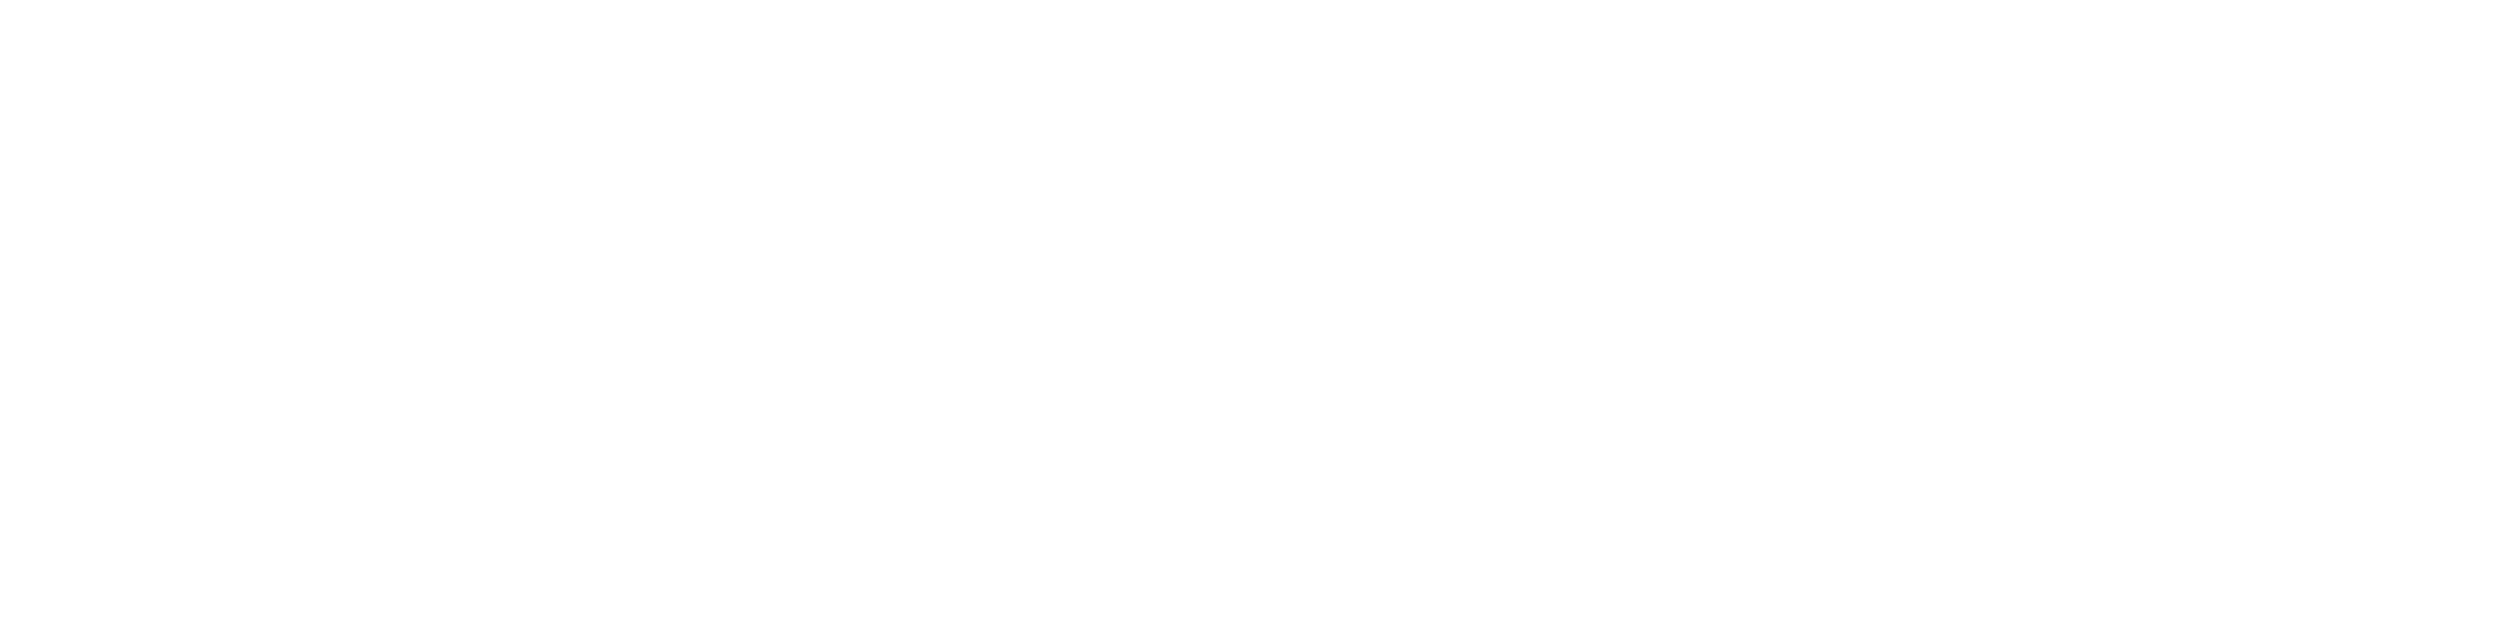 foodtext.png